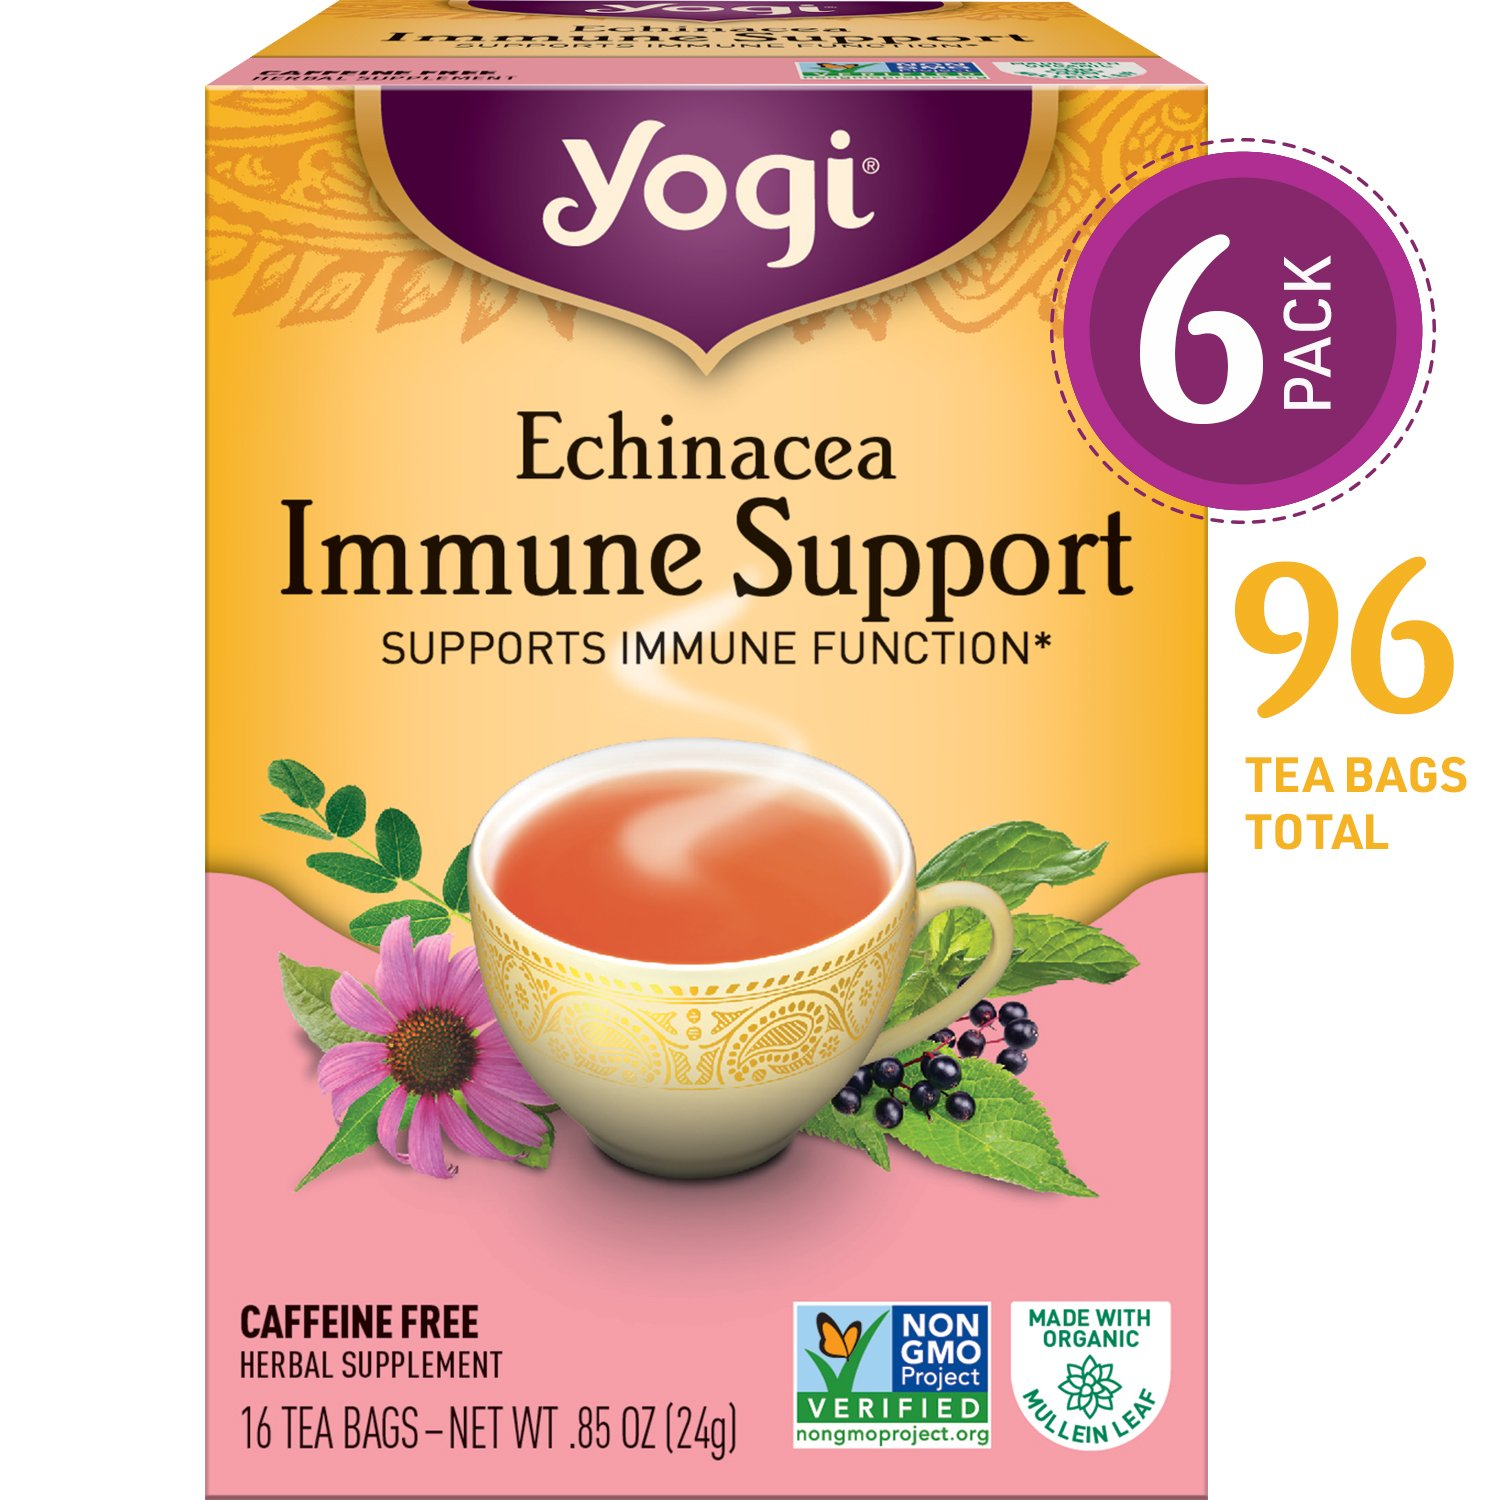 Yogi Tea, Throat Comfort, 16 Count (Pack of 6), Packaging May Vary 076950450189